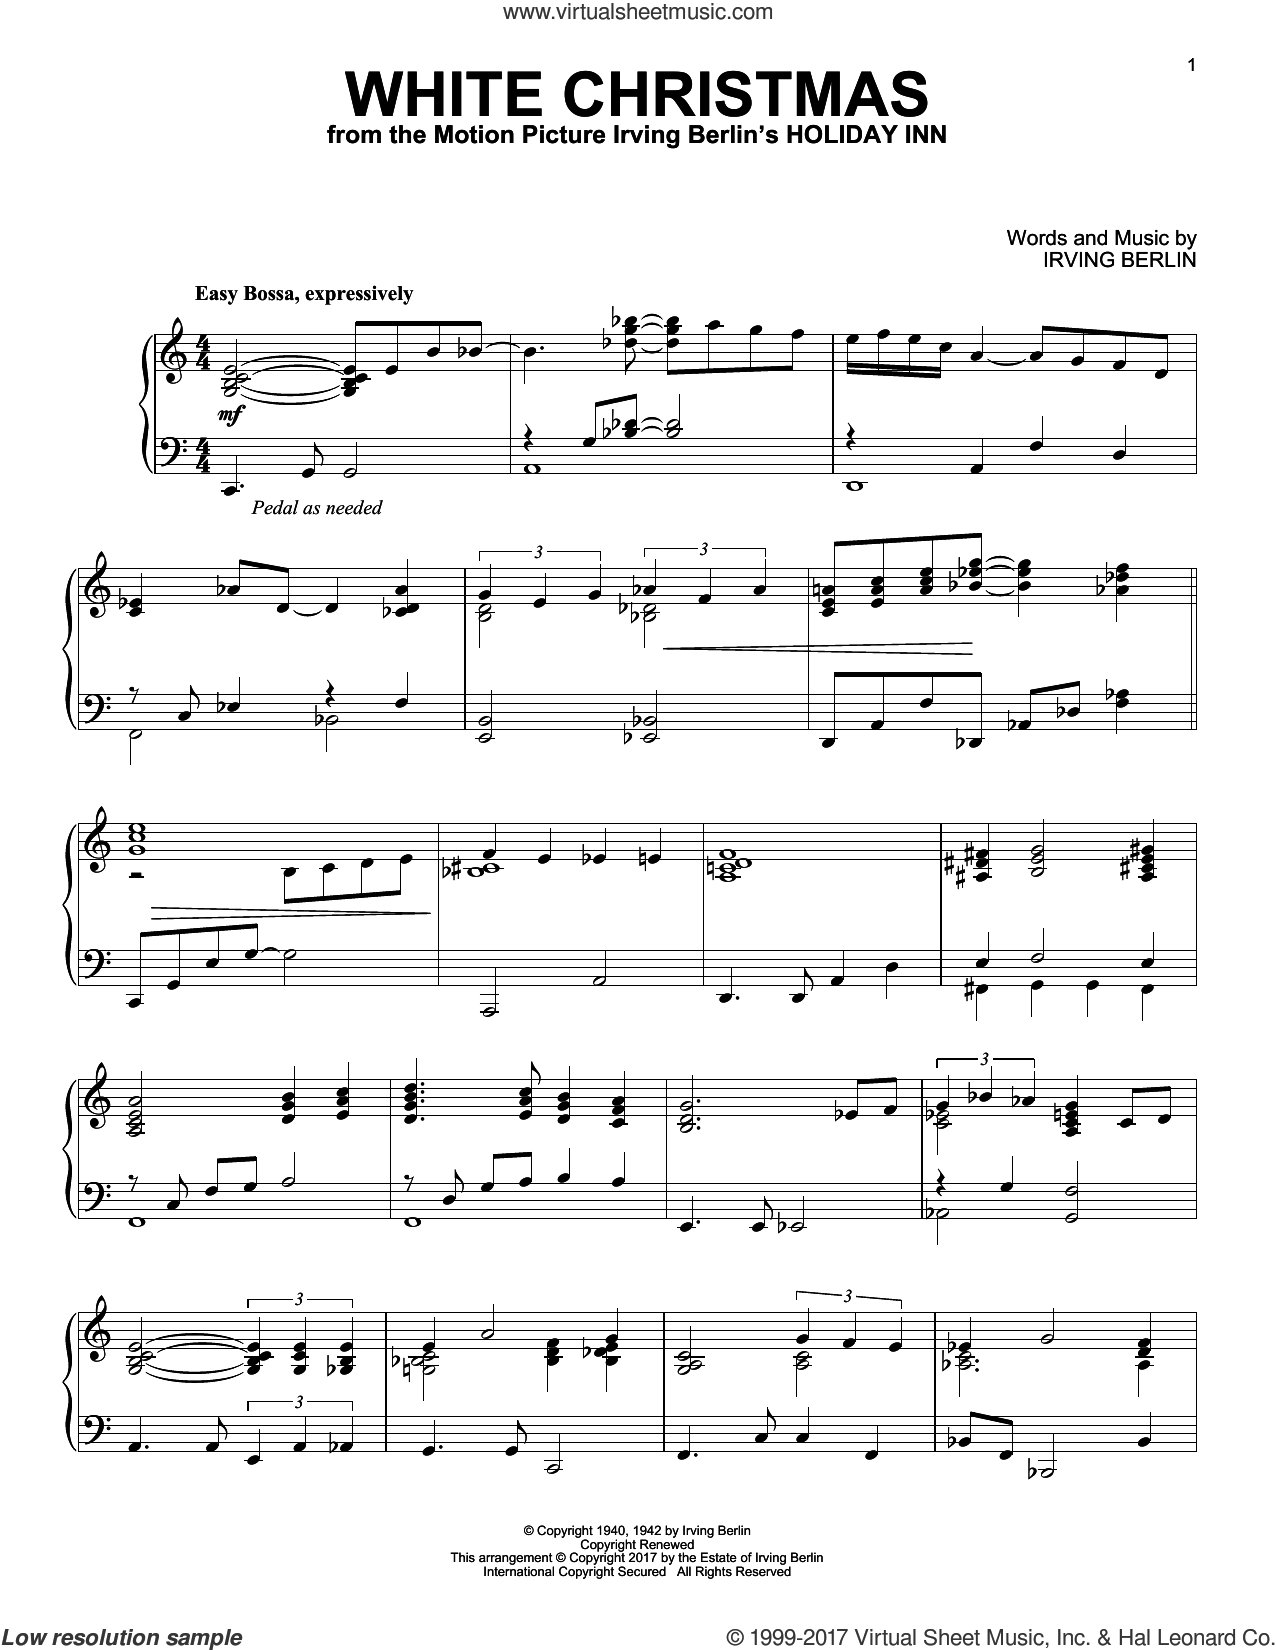 White Christmas [Jazz version] sheet music for piano solo by Irving Berlin, intermediate skill level